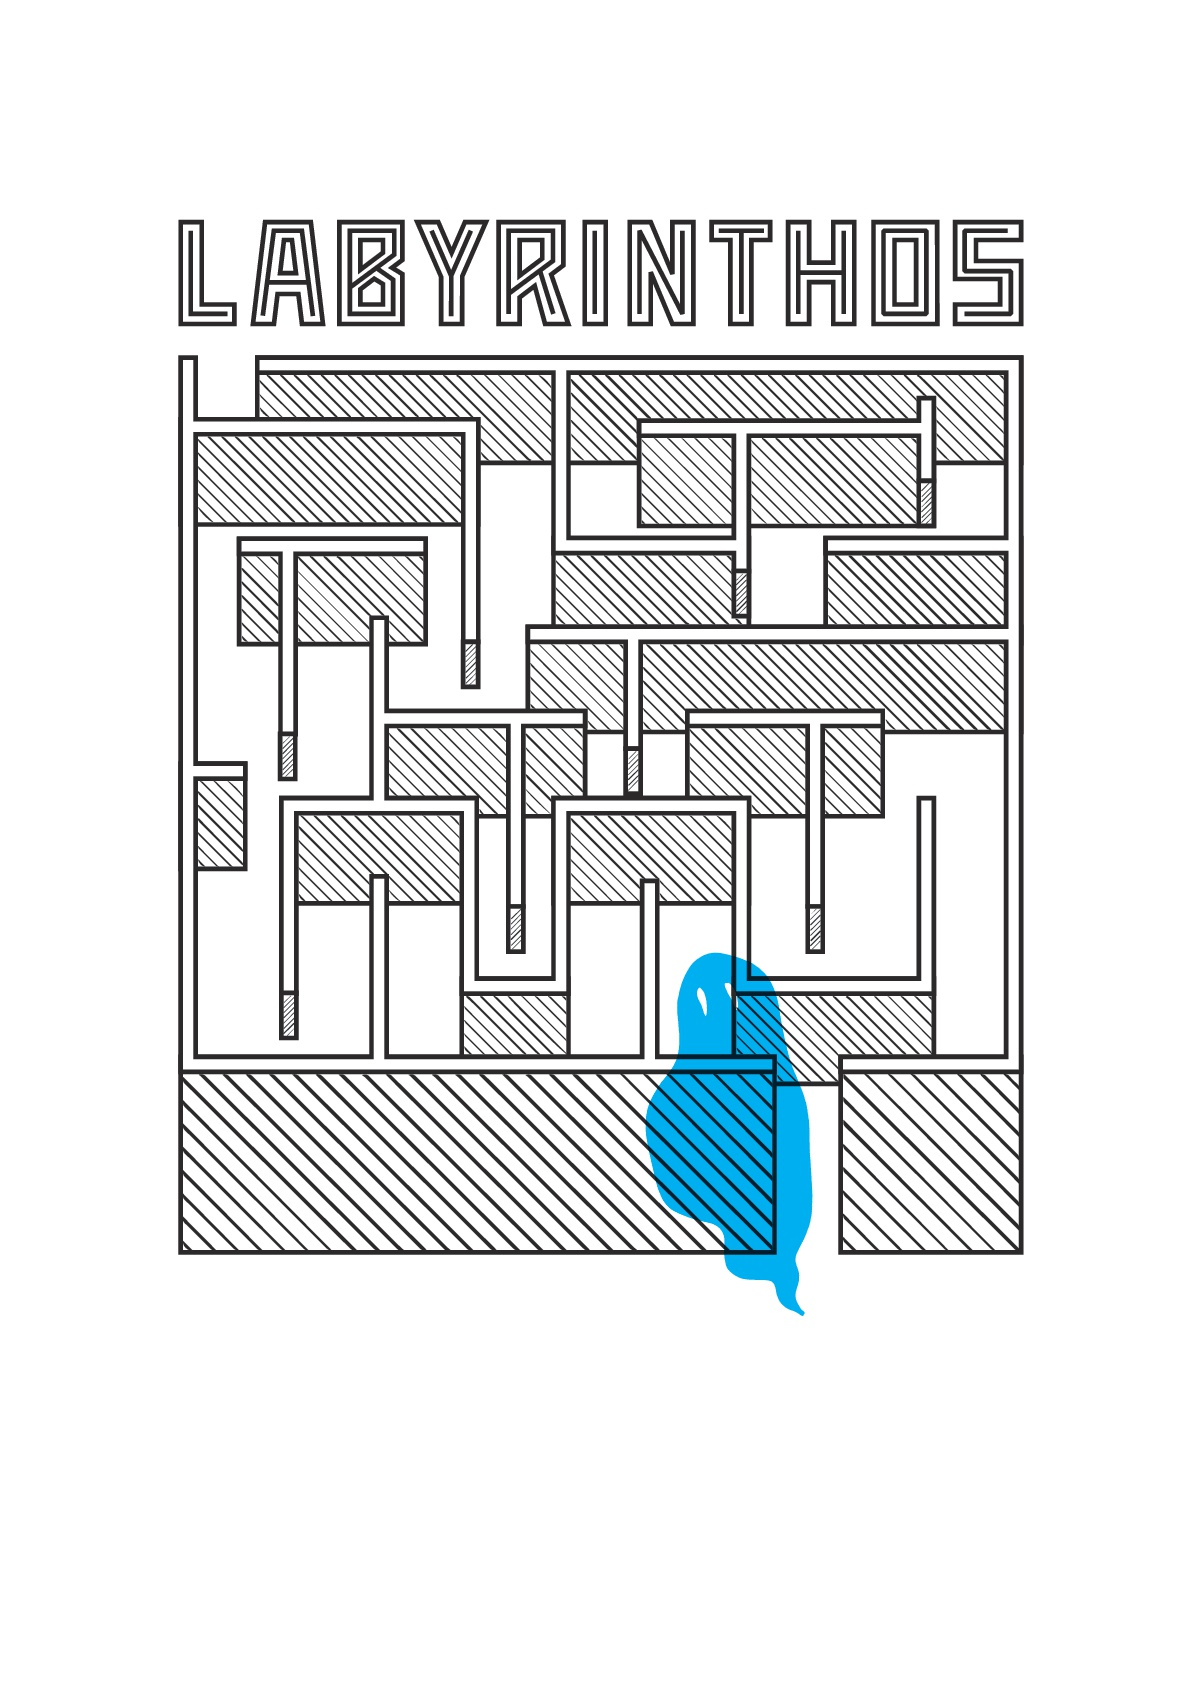 EXPOSITION - LABYRINTHOS @ 6b